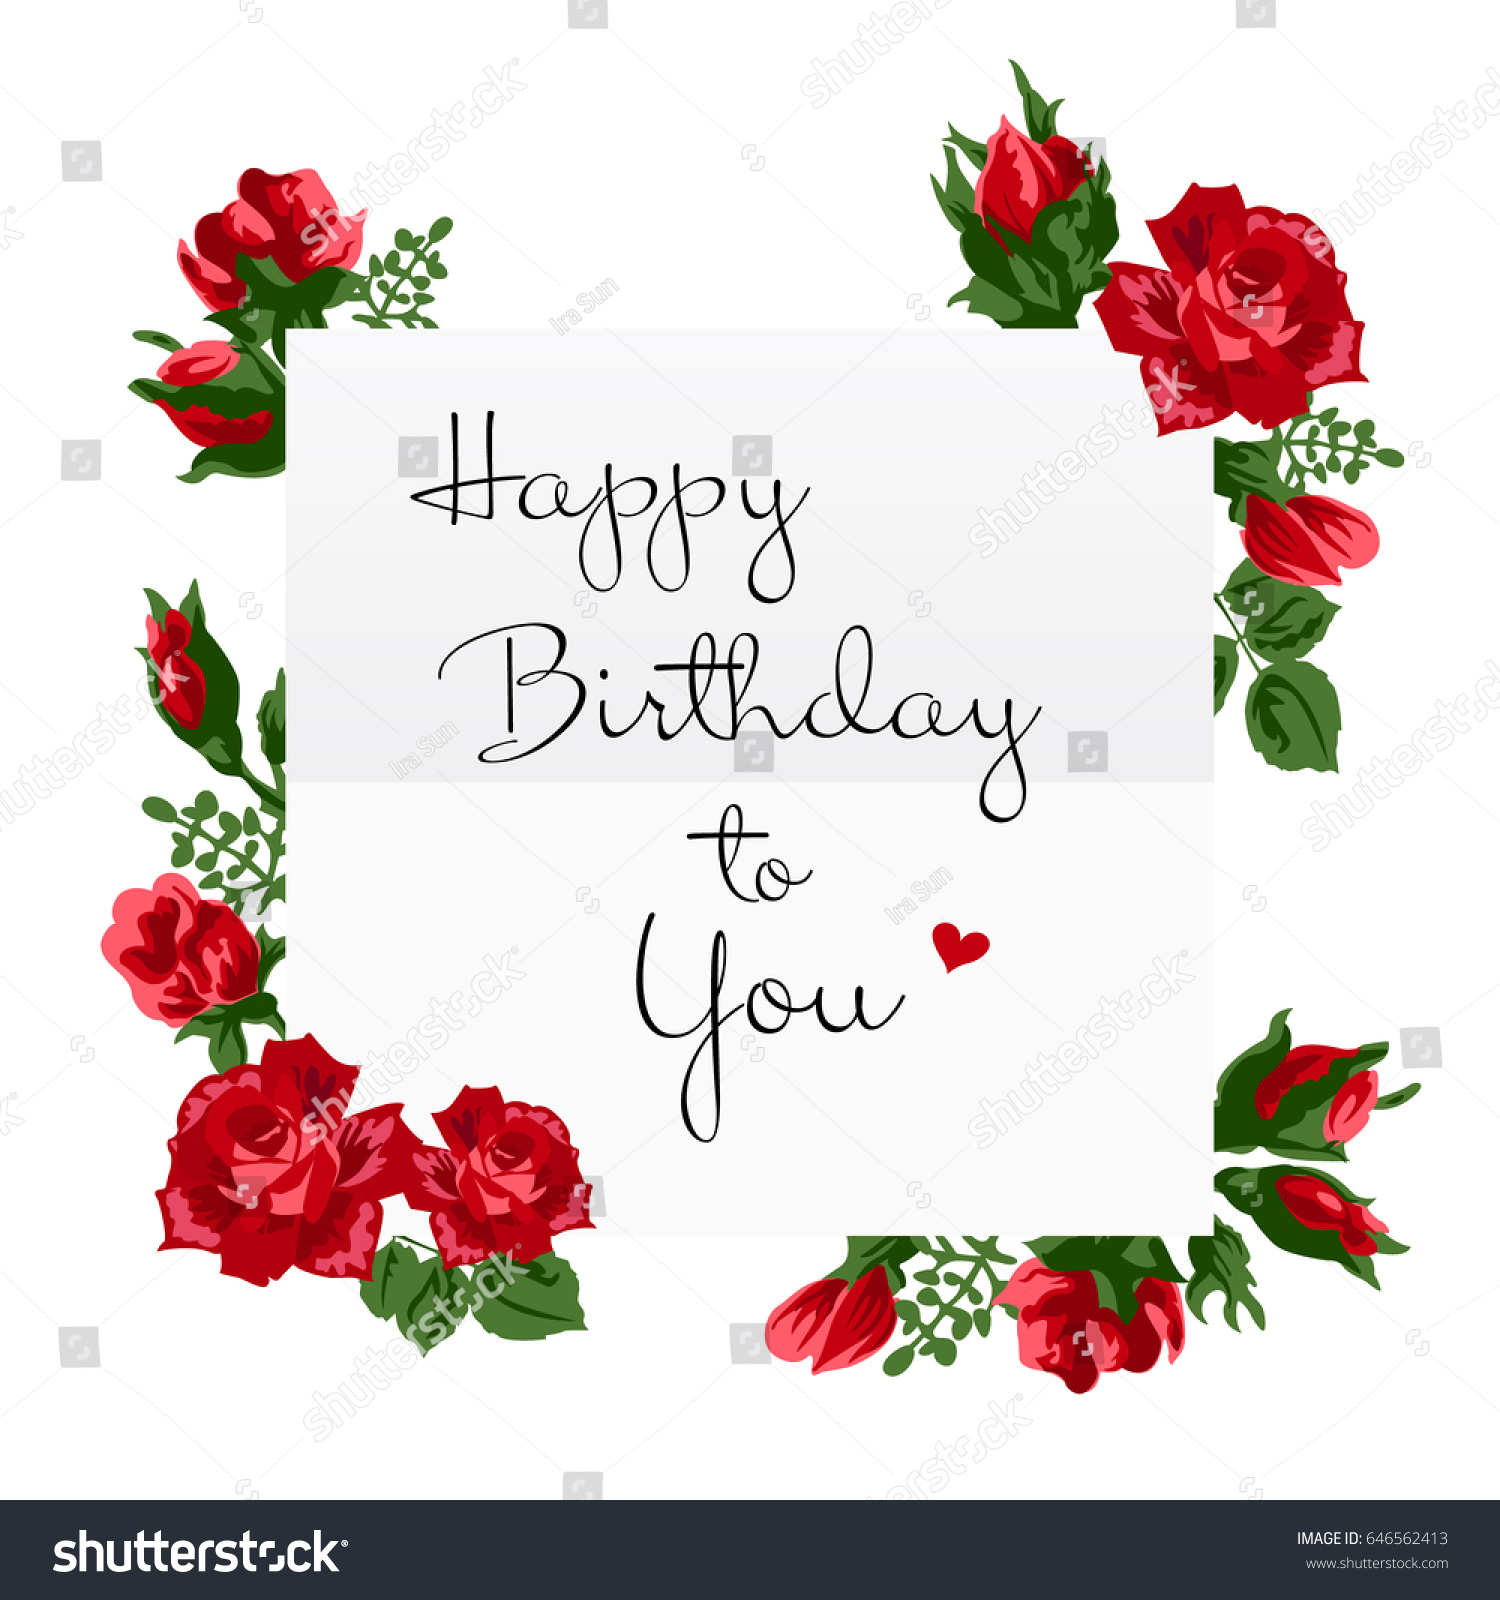 Vector illustration happy birthday greeting card stock vector vector illustration of happy birthday greeting card white paper greeting card decorated with red roses izmirmasajfo